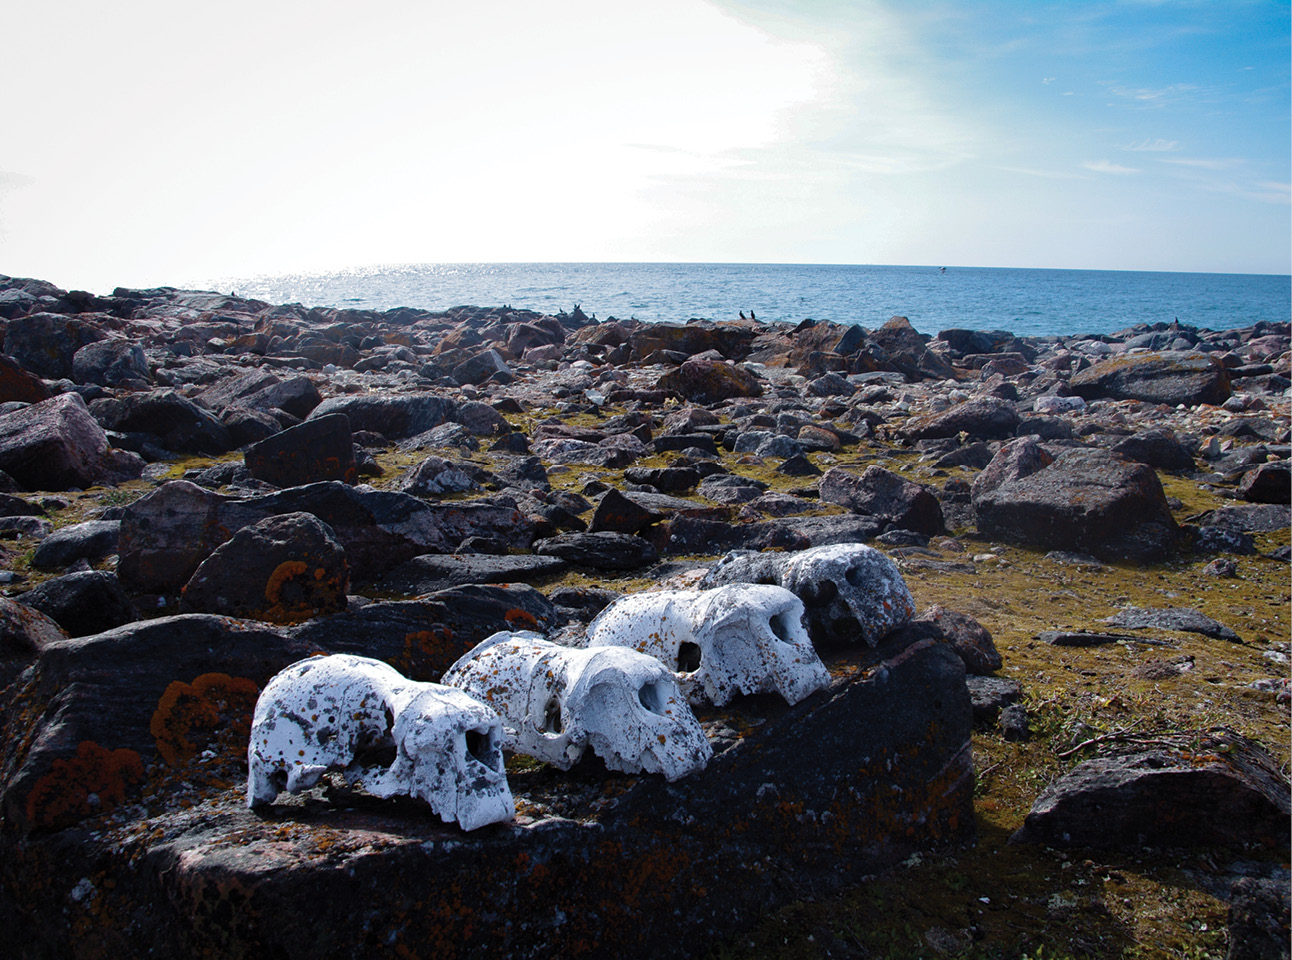 above These walrus skulls were lined up on the beach at Uglit at an unknown point in the past.